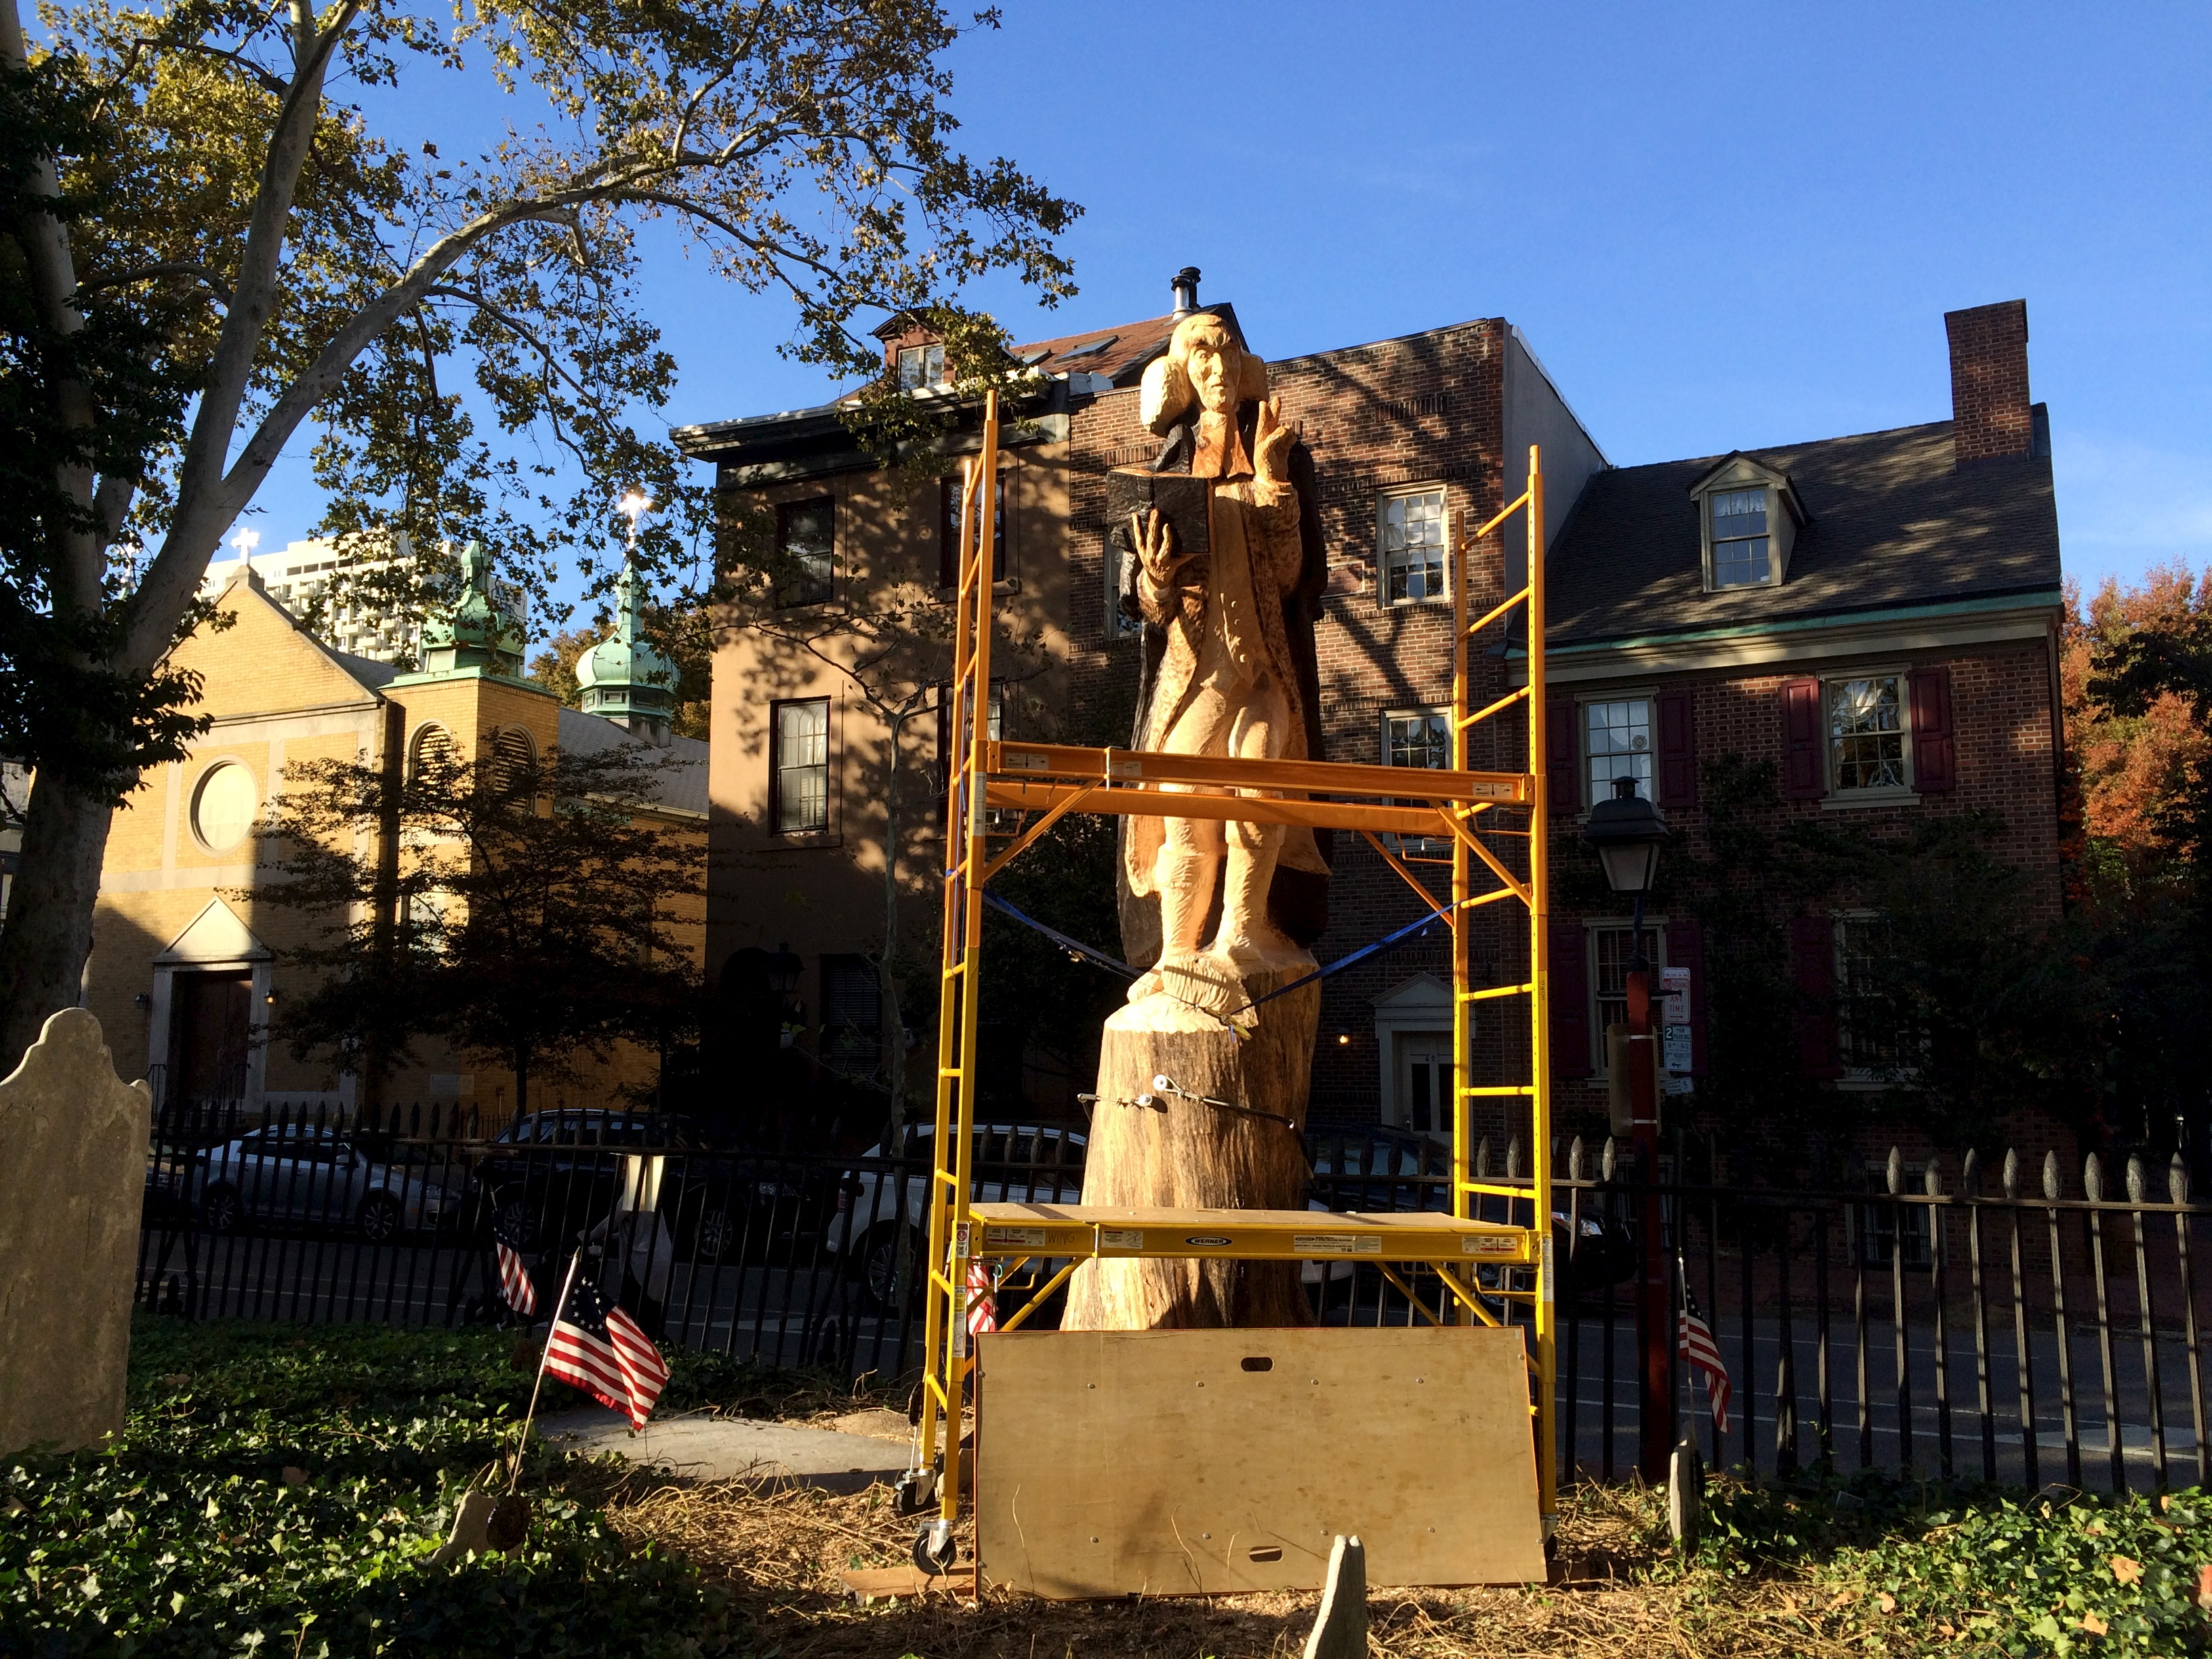 Roger Wing's sculpture of George Duffield nearing completion